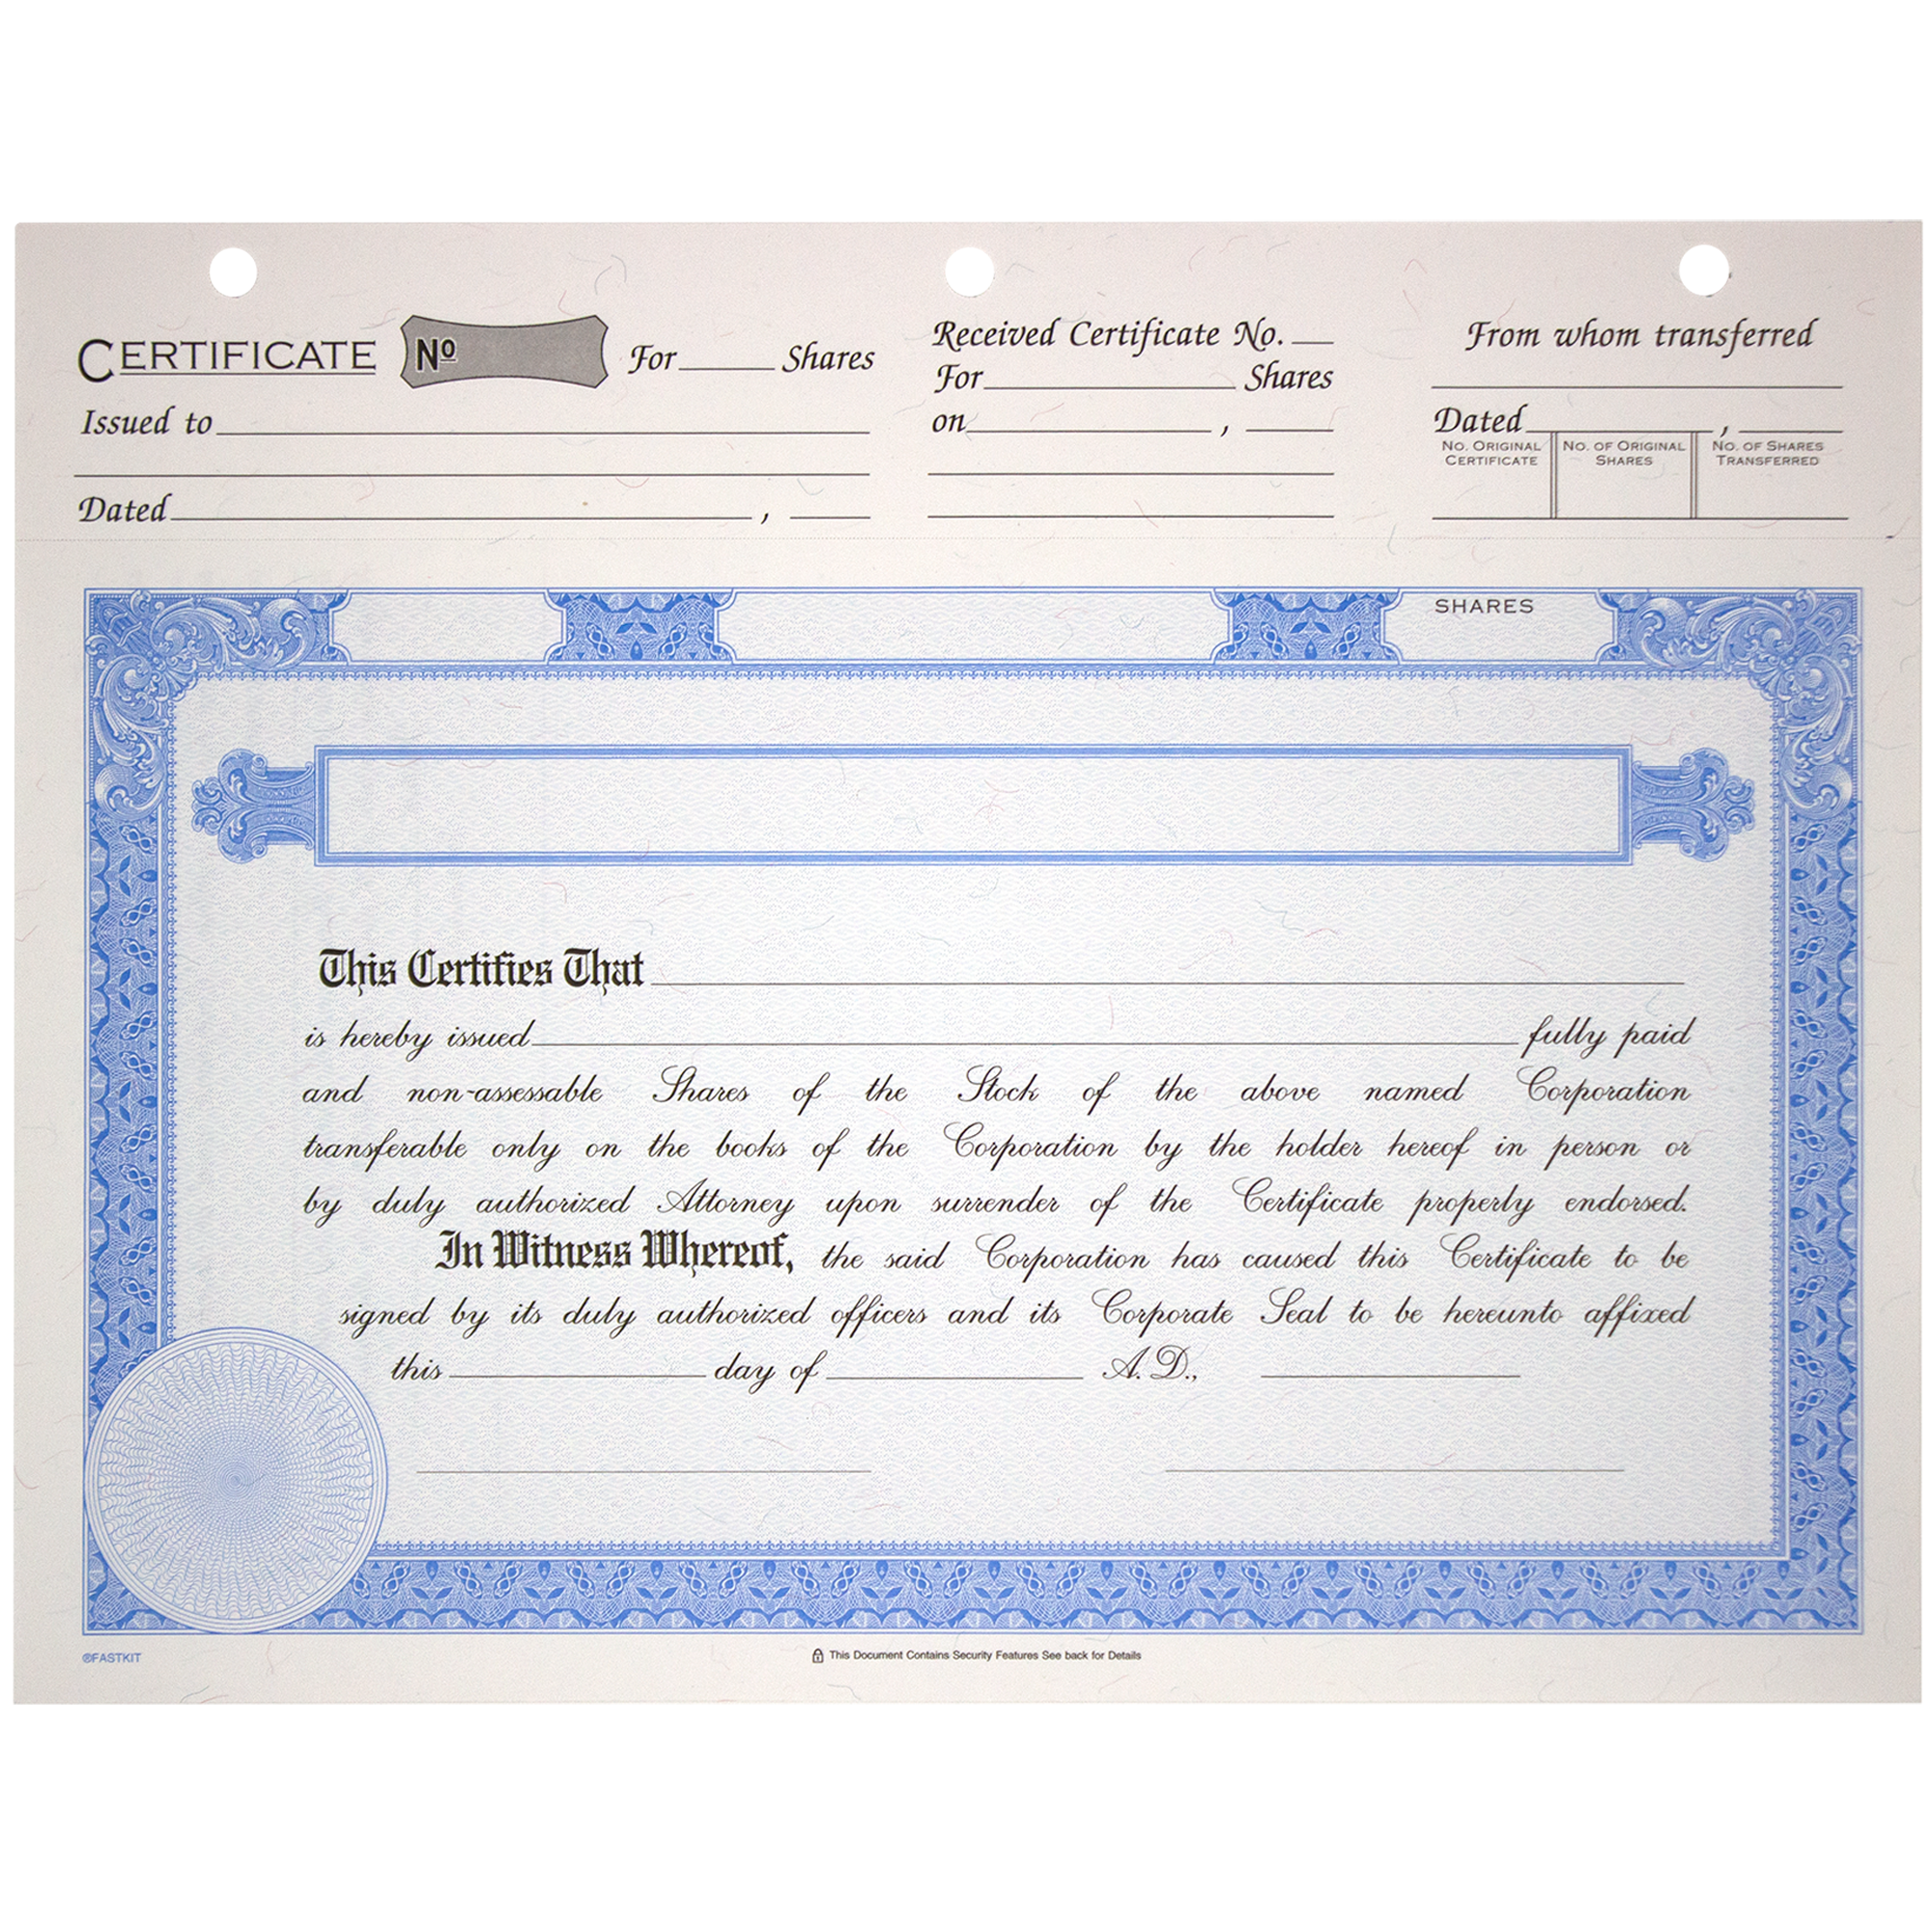 BLUTO 02 Blank Corporate Stock Certificates | Quantity of 20 or More